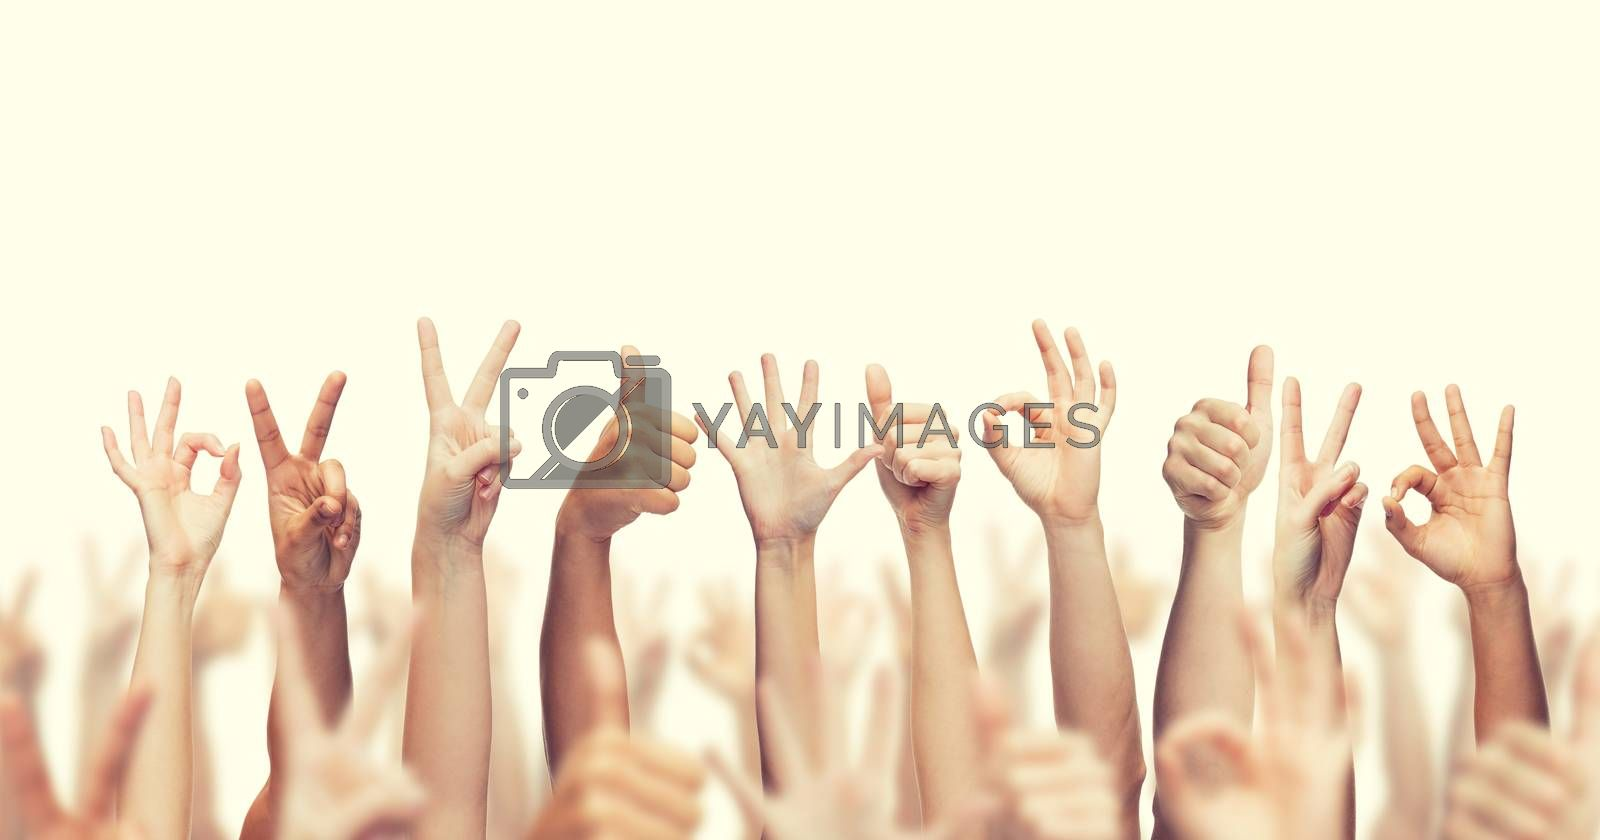 Royalty free image of human hands showing thumbs up, ok and peace signs by dolgachov